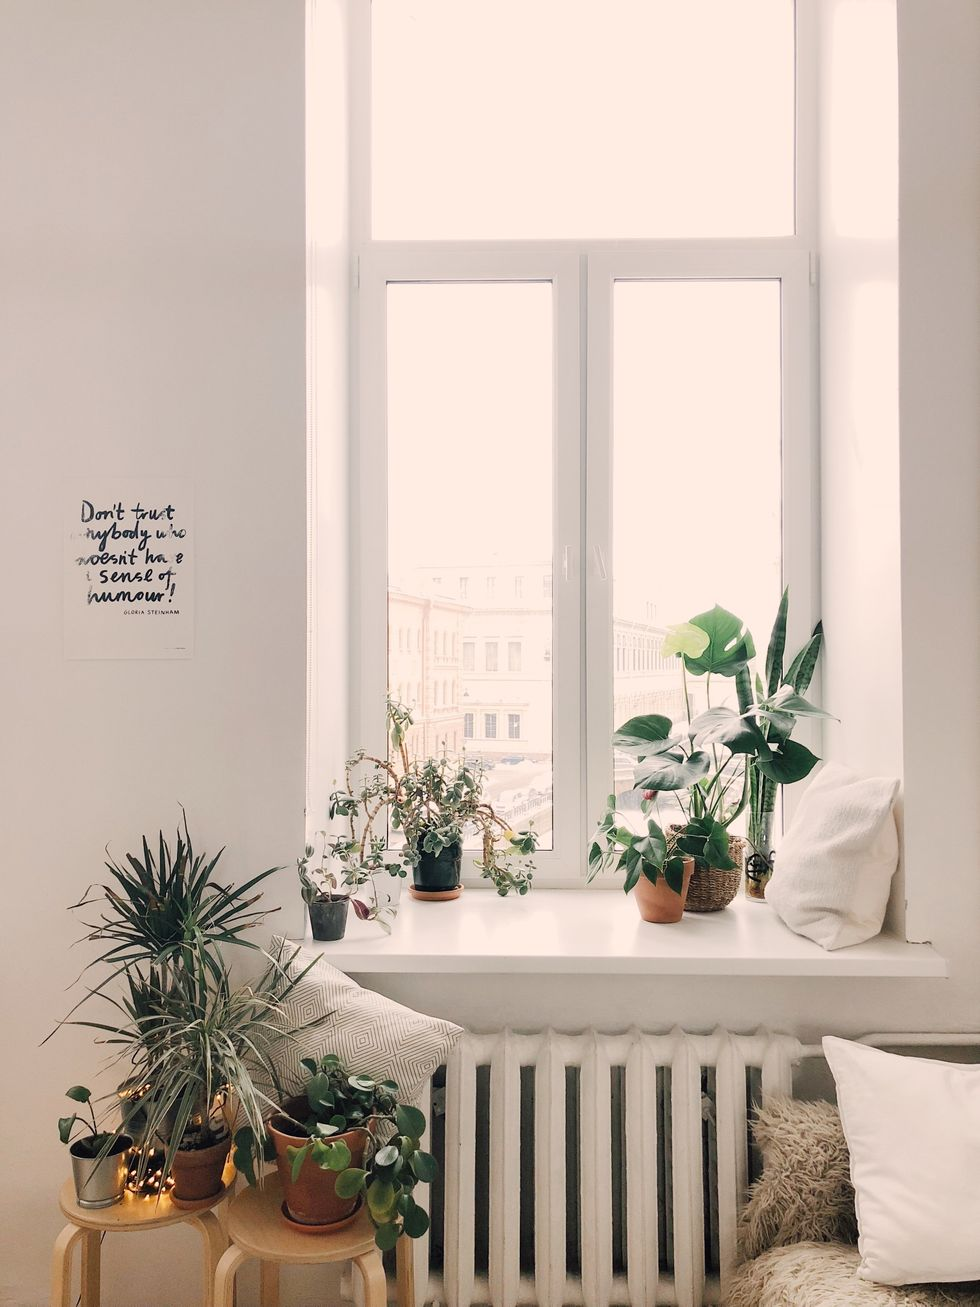 https://www.pexels.com/photo/photo-of-green-leaf-potted-plants-on-window-and-stand-930004/